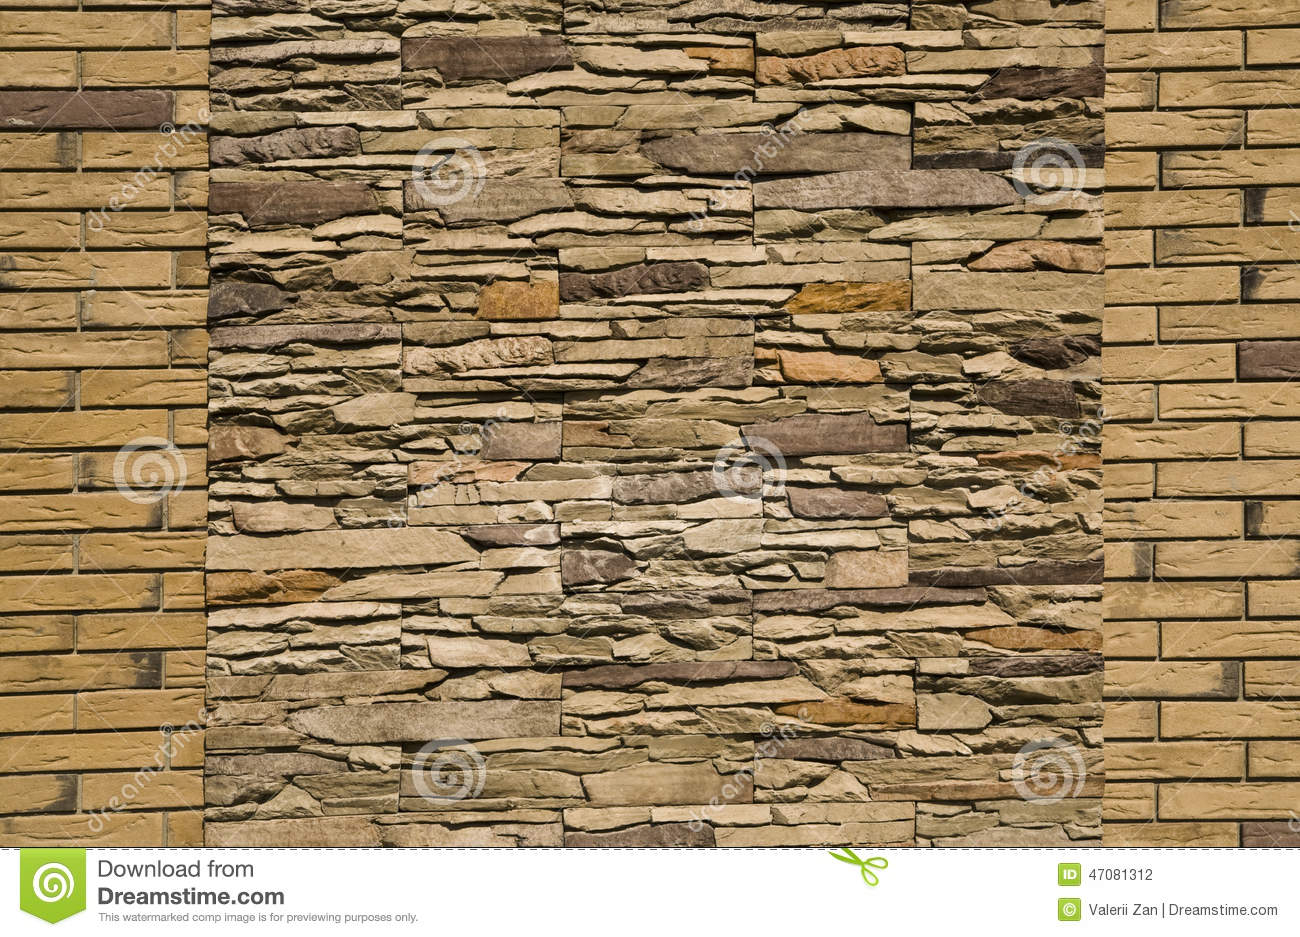 Piedra decorativa pared estilo rstico natural dividir - Piedra decorativa para paredes ...